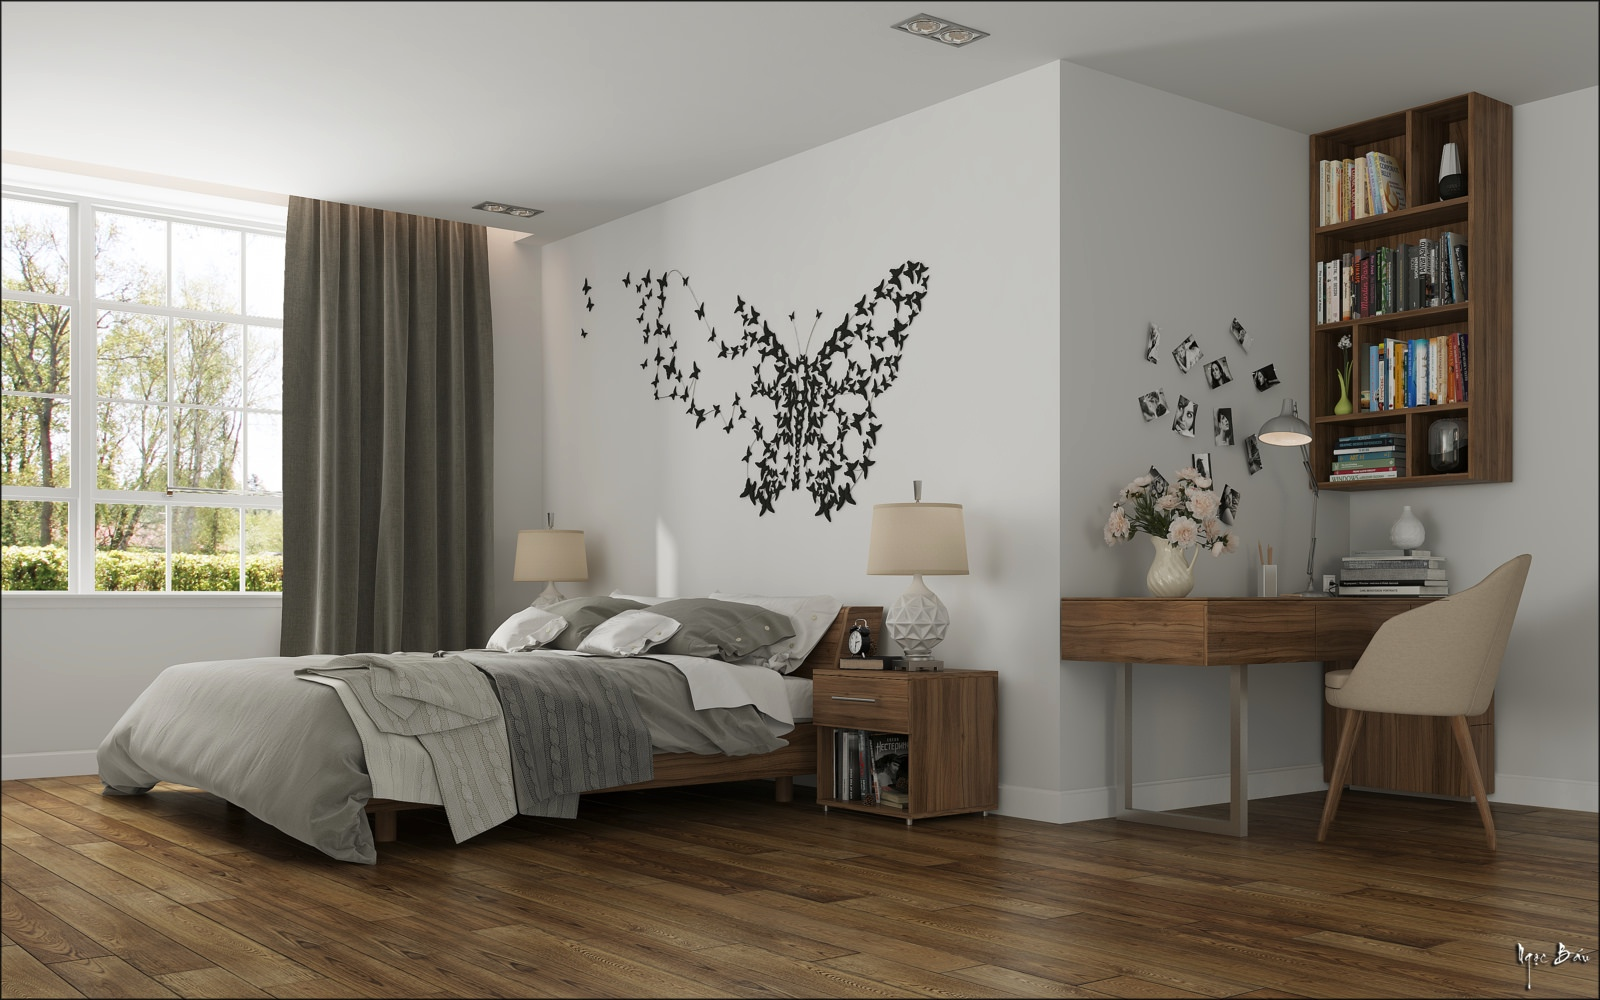 Interior Design Wall Art Bedroom Butterfly Wall Art  Interior Design Ideas.